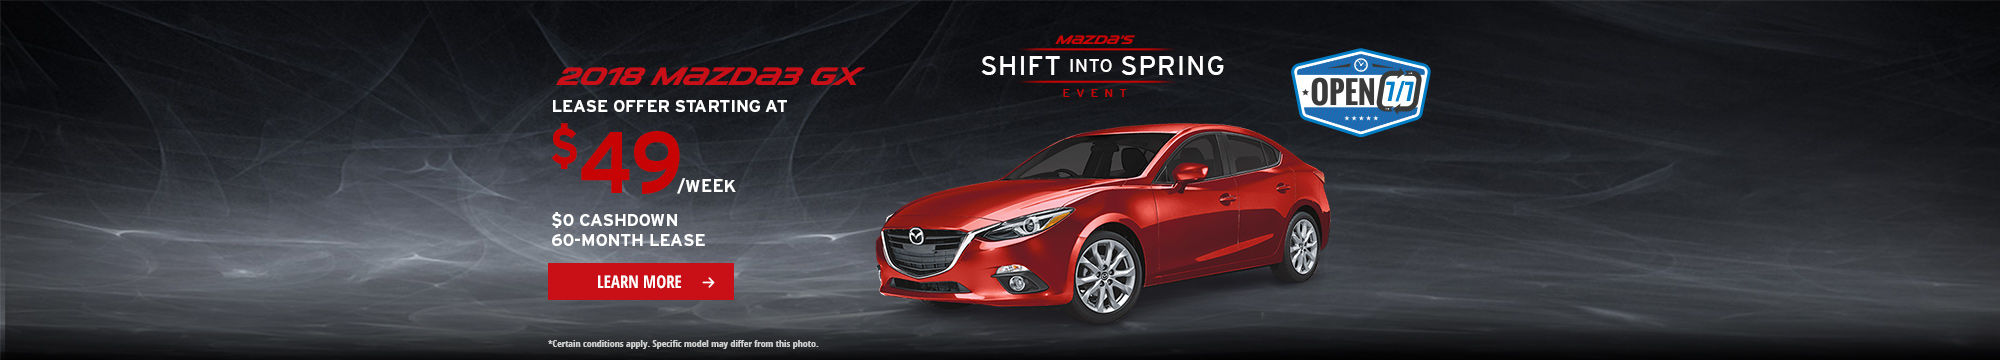 Shift into Spring Event - Mazda3